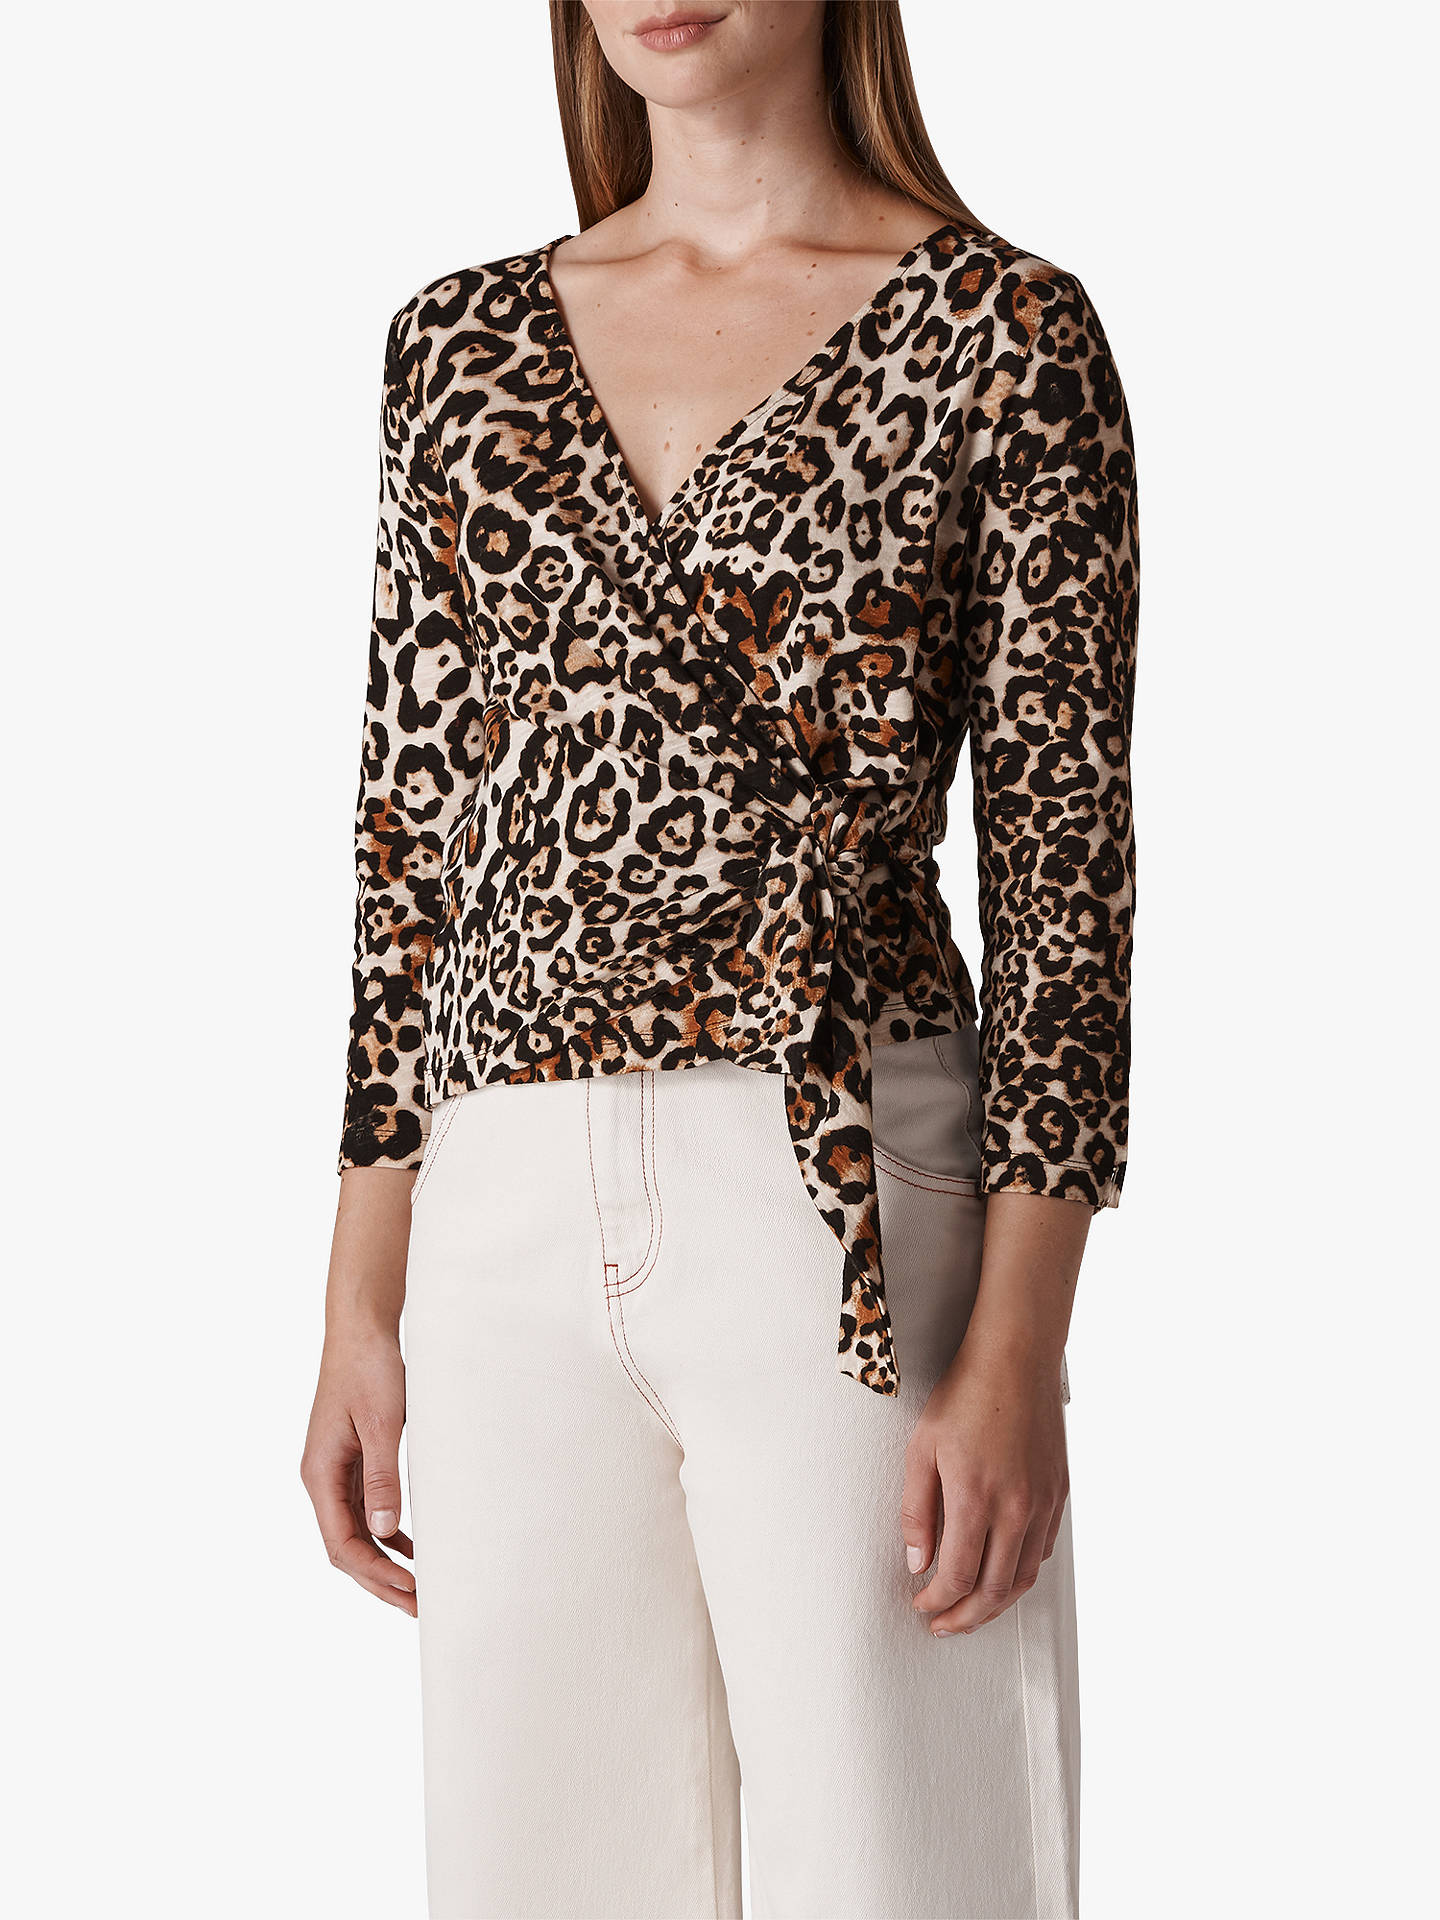 771831ea46f1 Buy Whistles Leopard Print Wrap Top, Multi, XS Online at johnlewis.com ...